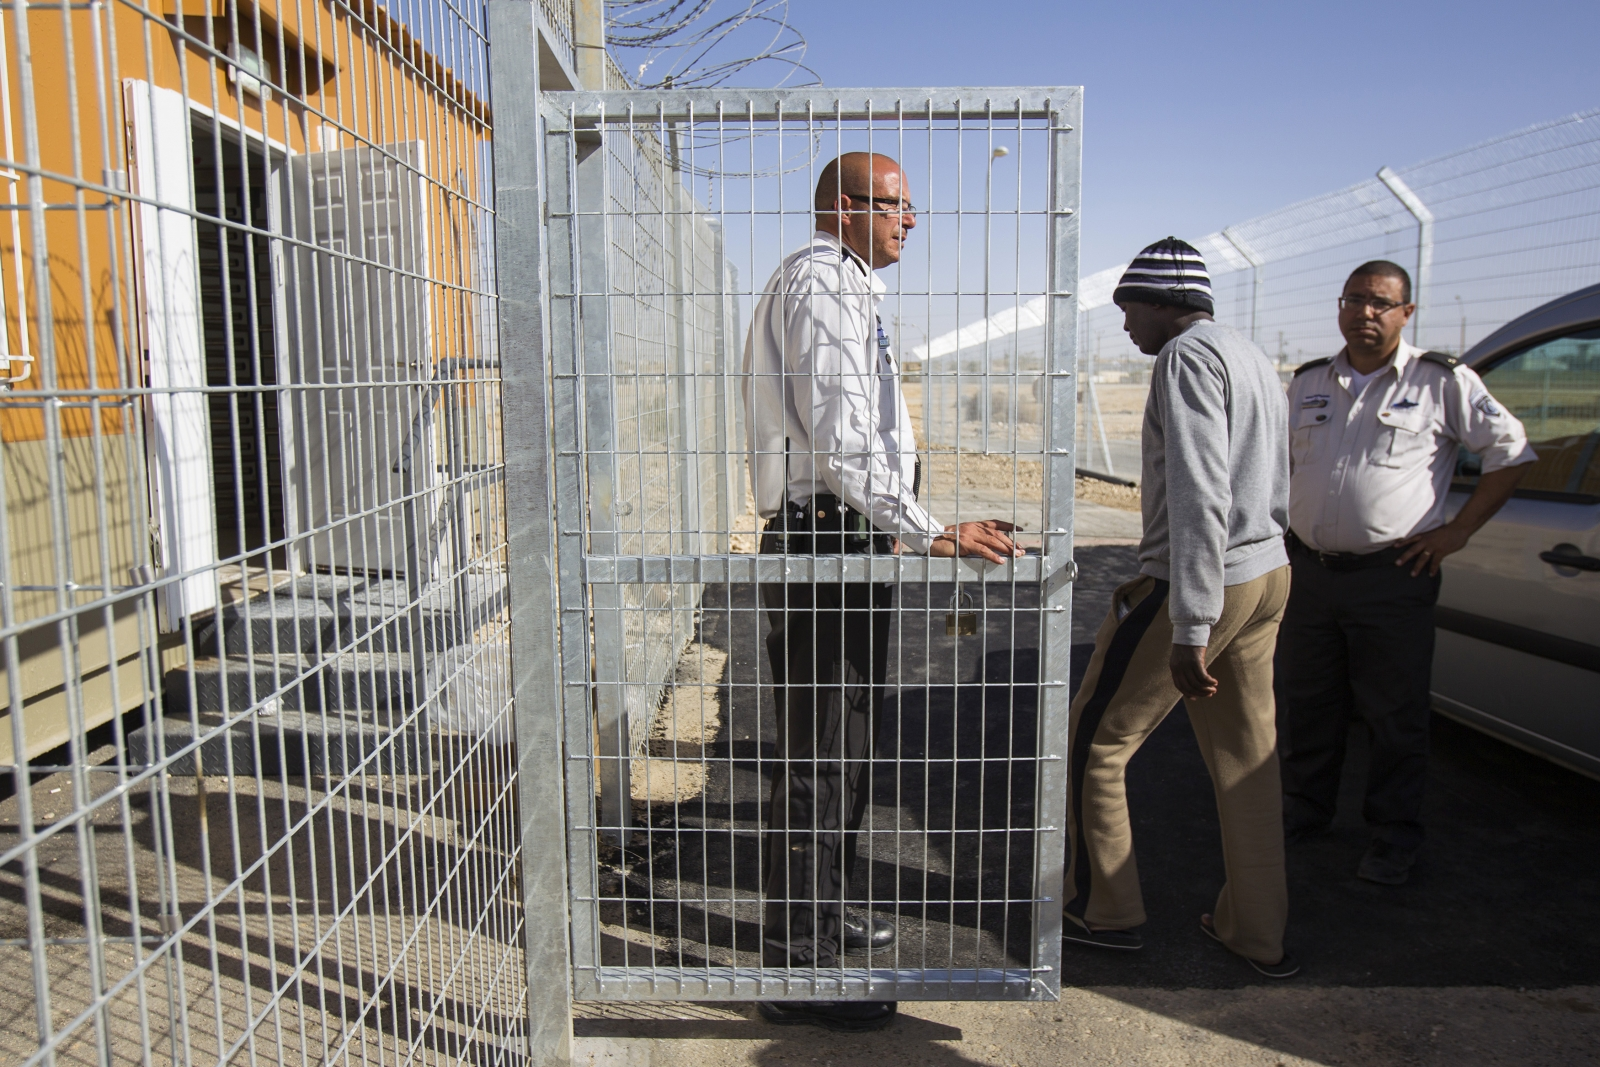 Israel migrants Holot detention centre